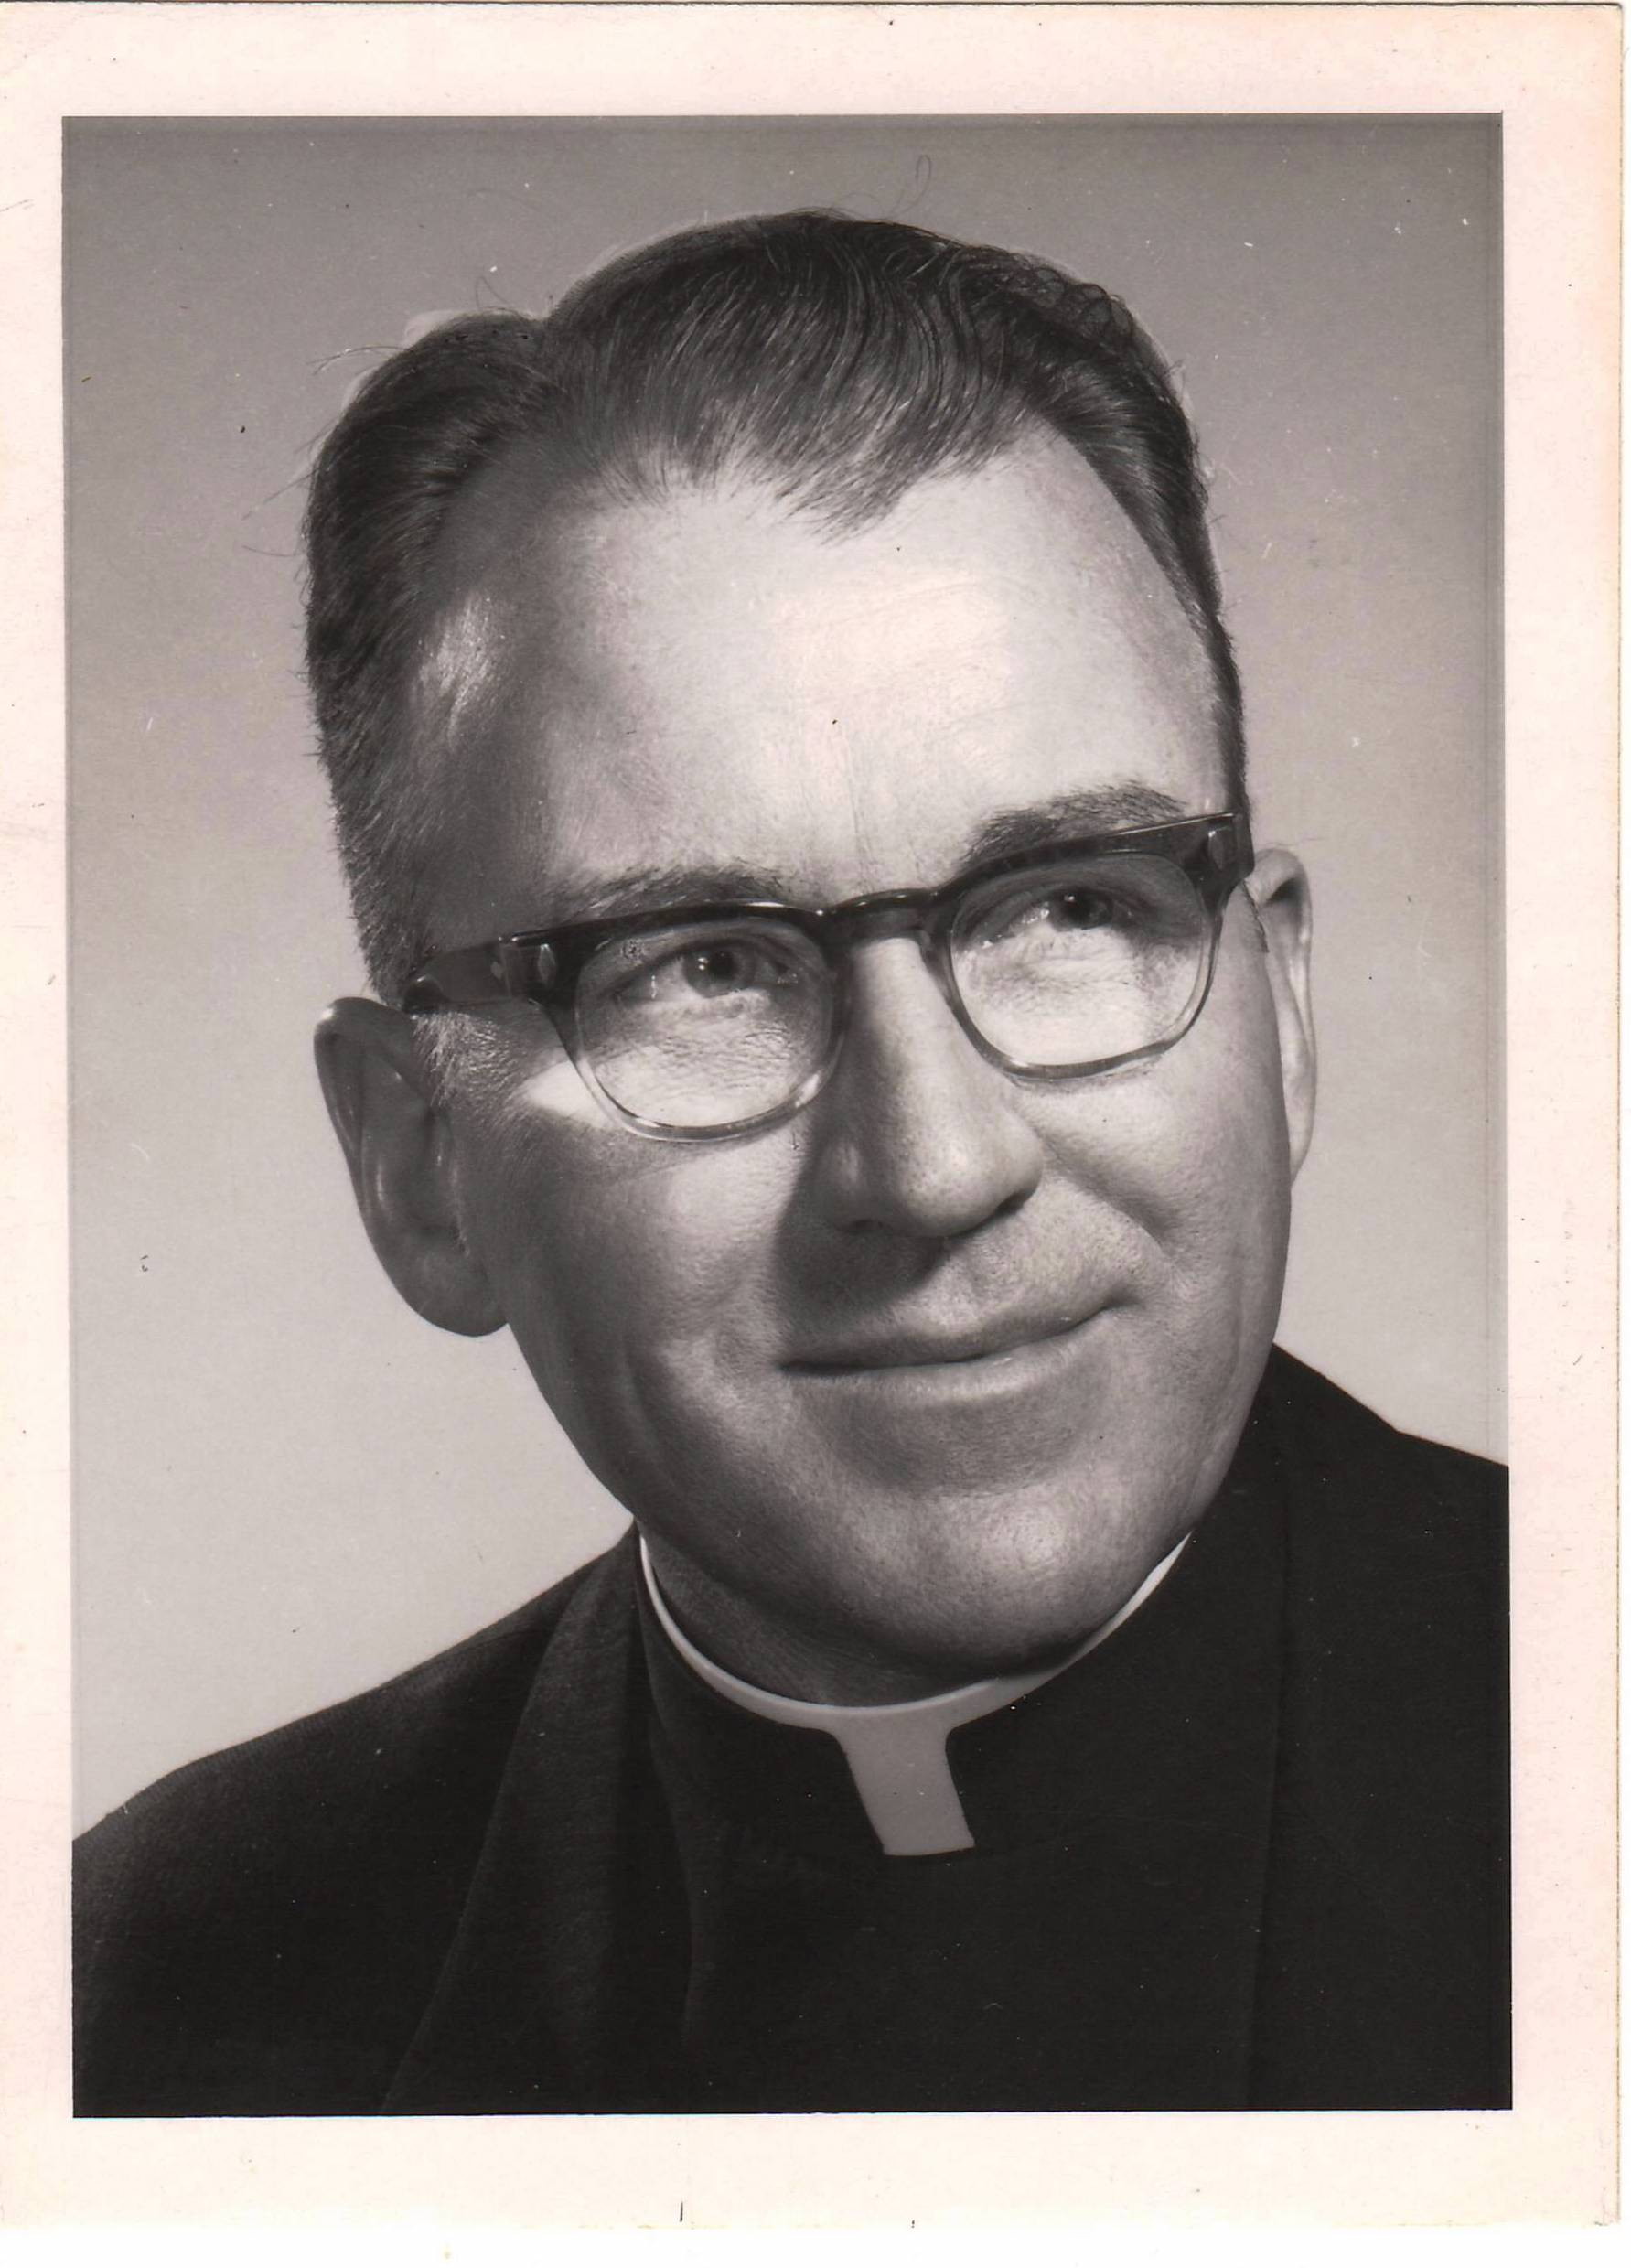 Fr. Harley Schmitt, second Pastor of Our Lady of Fatima Parish